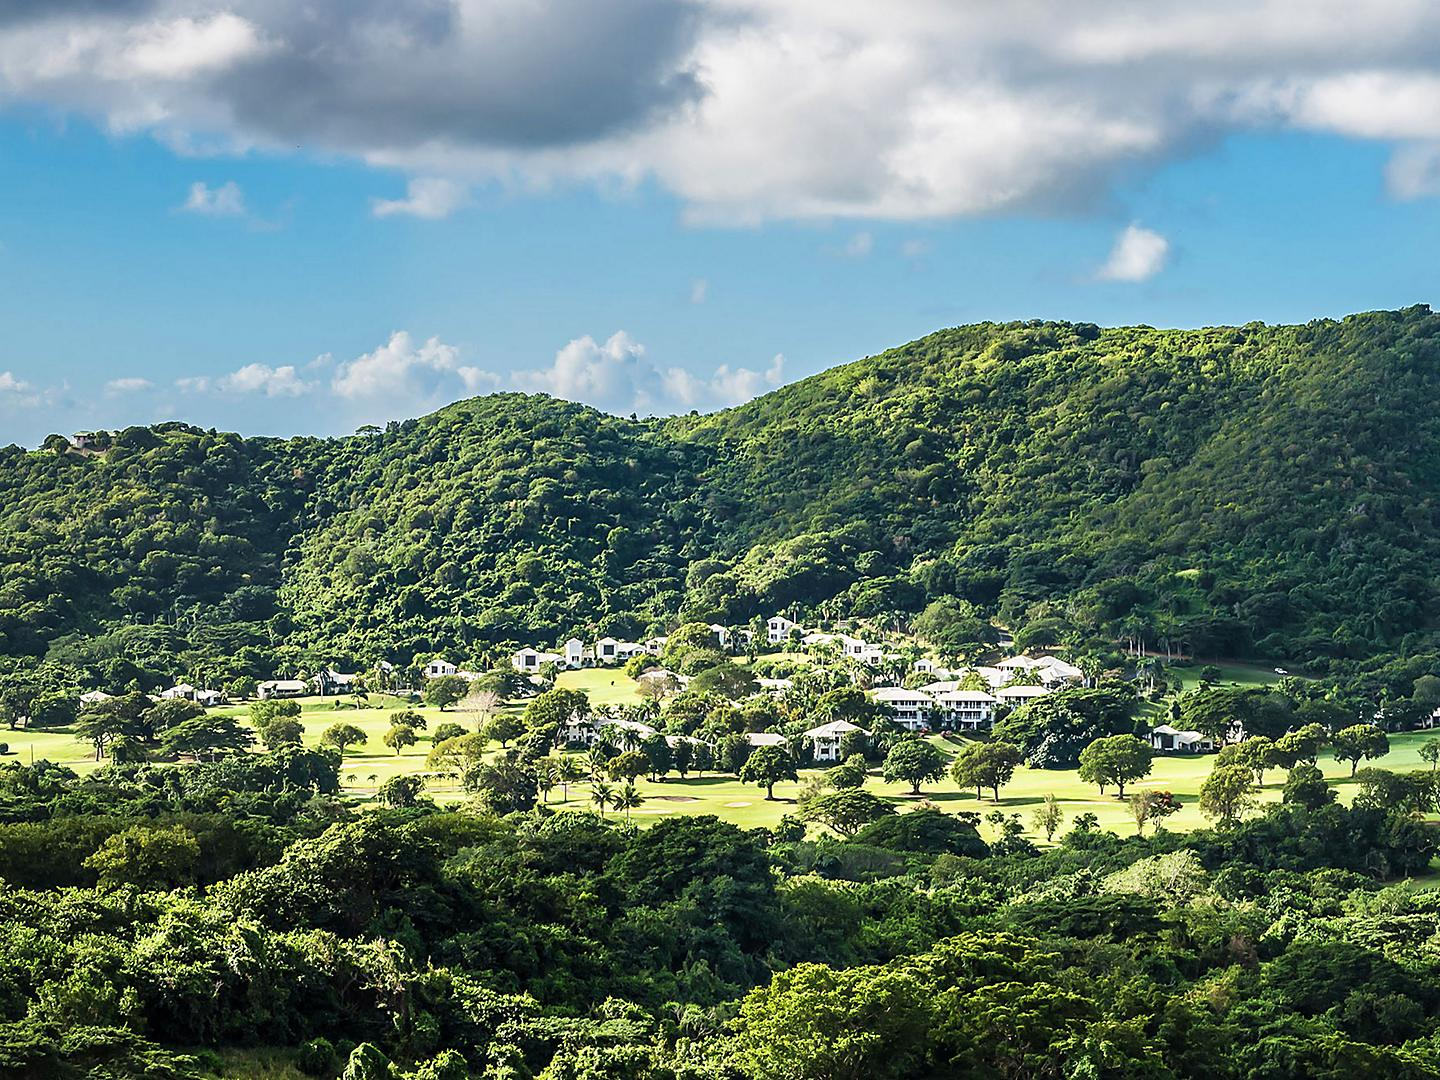 St. Croix, Lush Natural Scenery